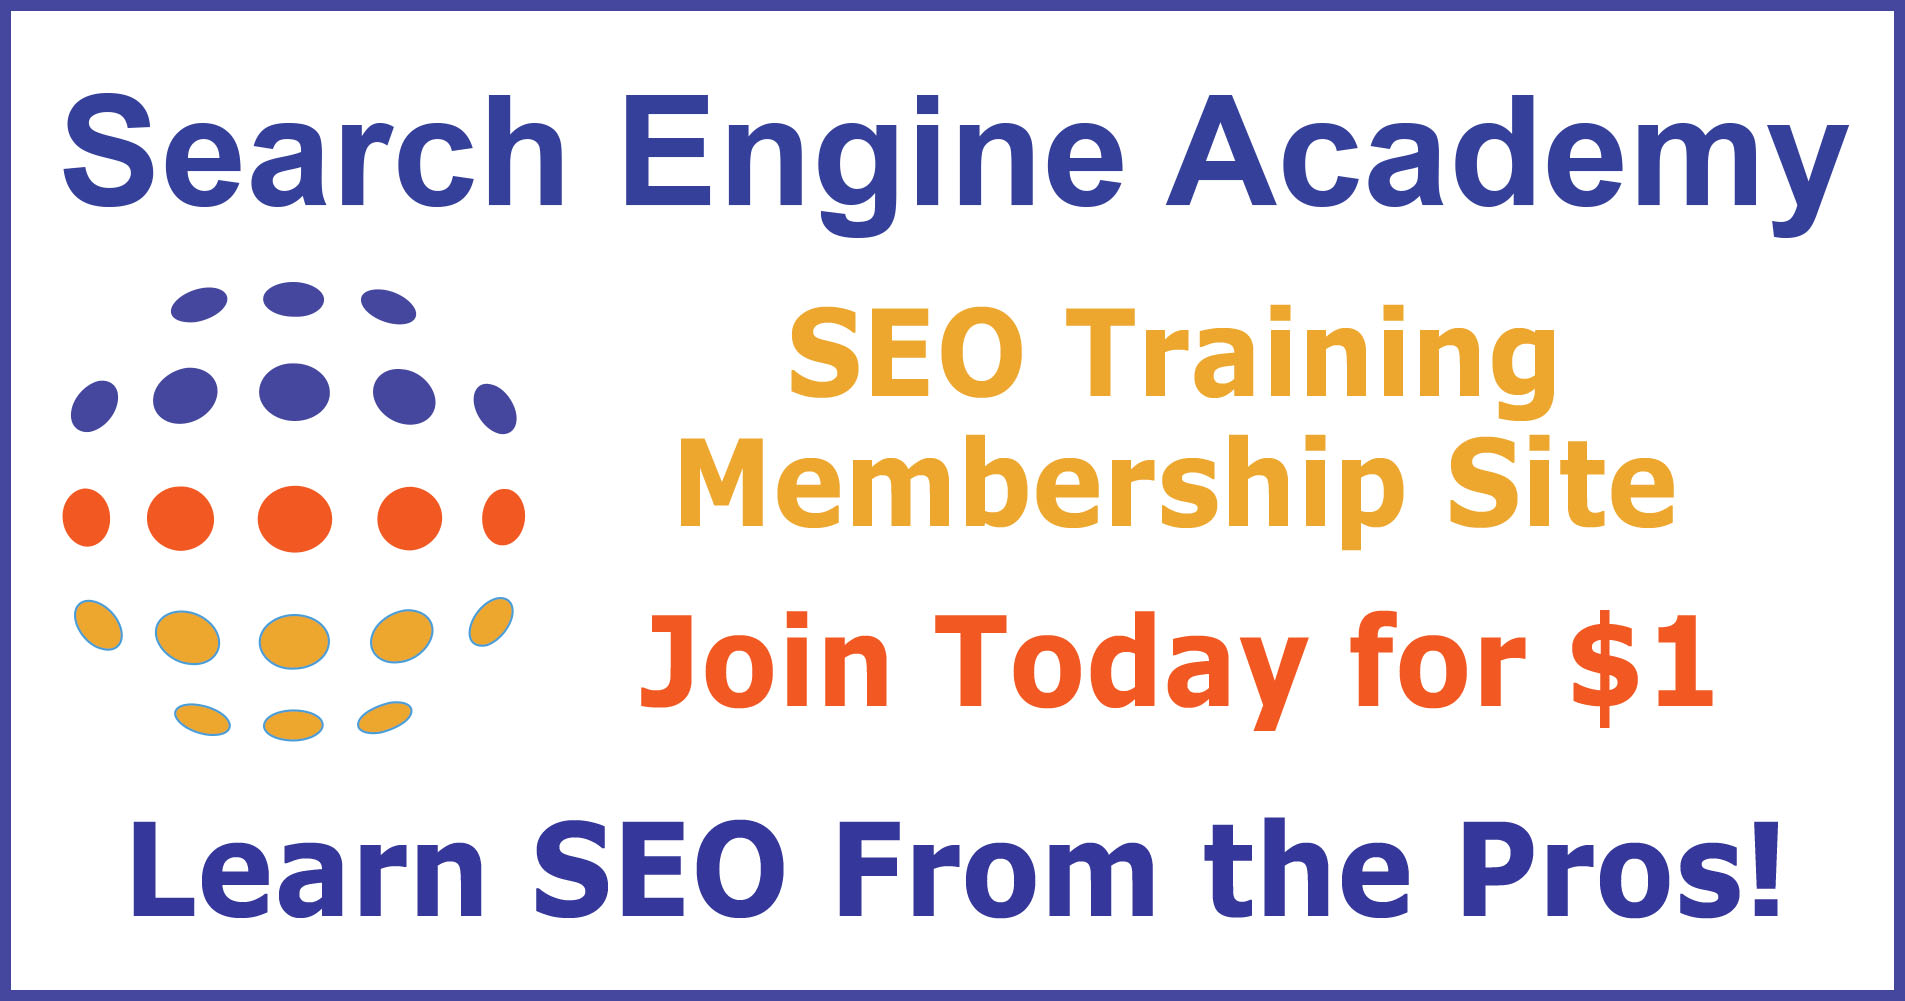 Join the SEA Members Site and Learn SEO from the Pros